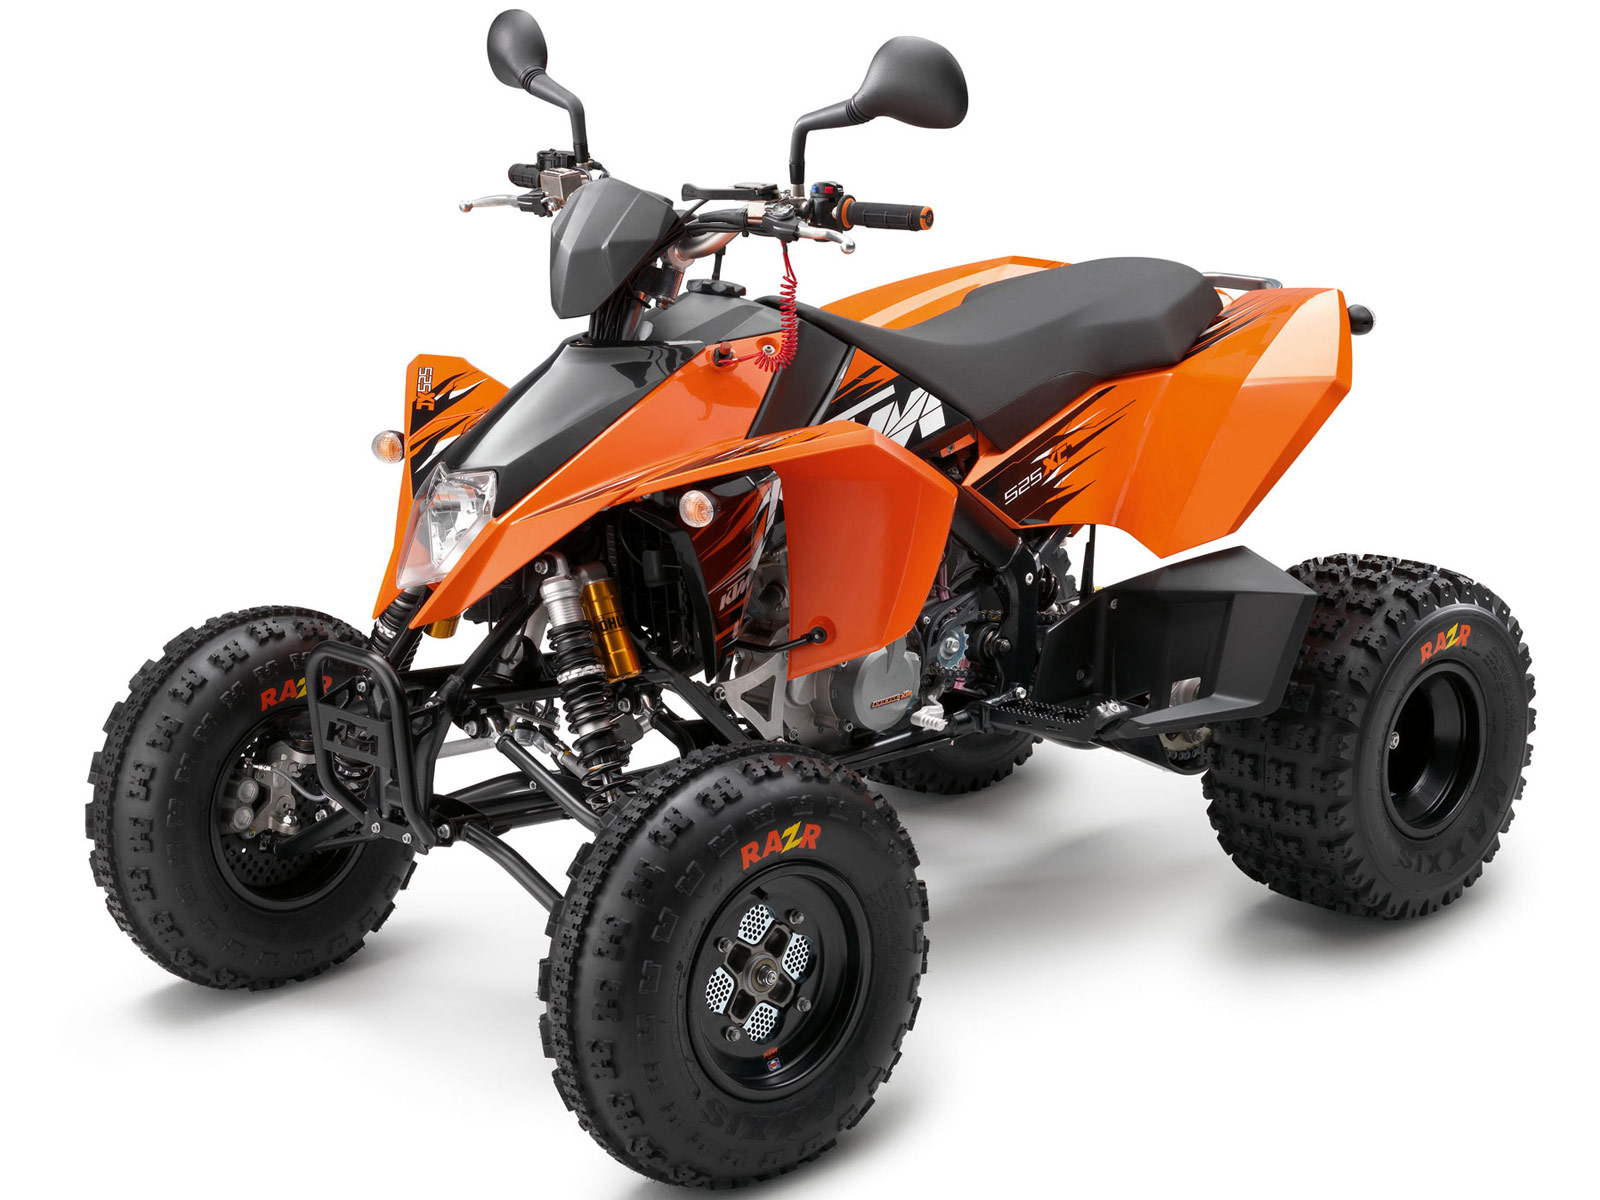 2012 ktm 525xc atv review pictures specifications. Black Bedroom Furniture Sets. Home Design Ideas